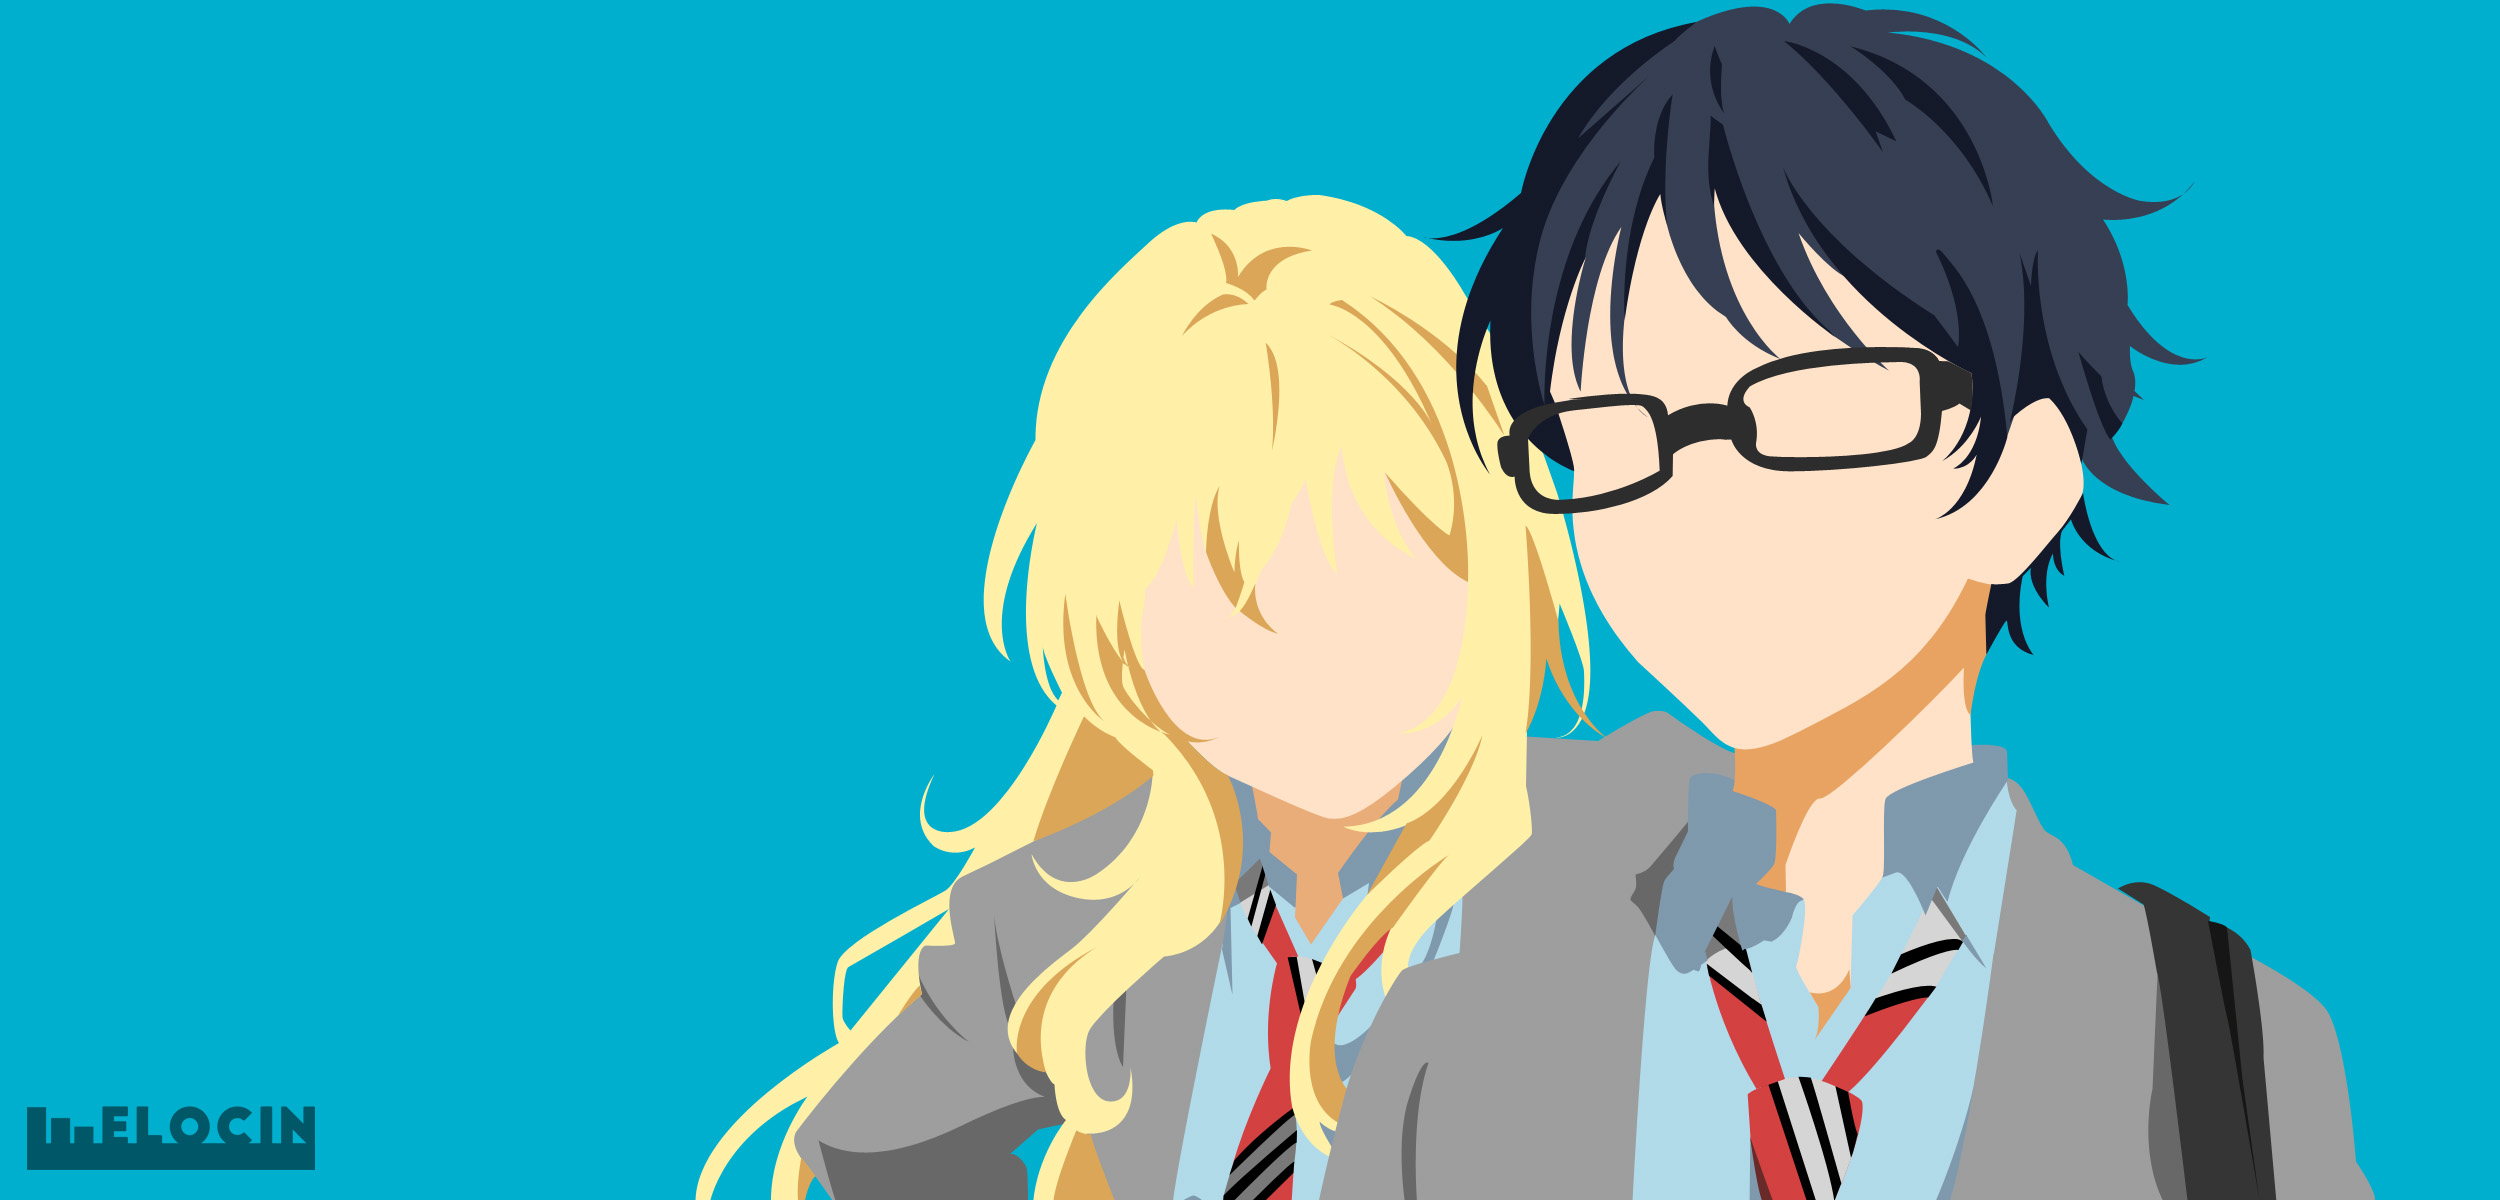 Your Lie In April Hd Wallpaper Background Image 2500x1200 Id